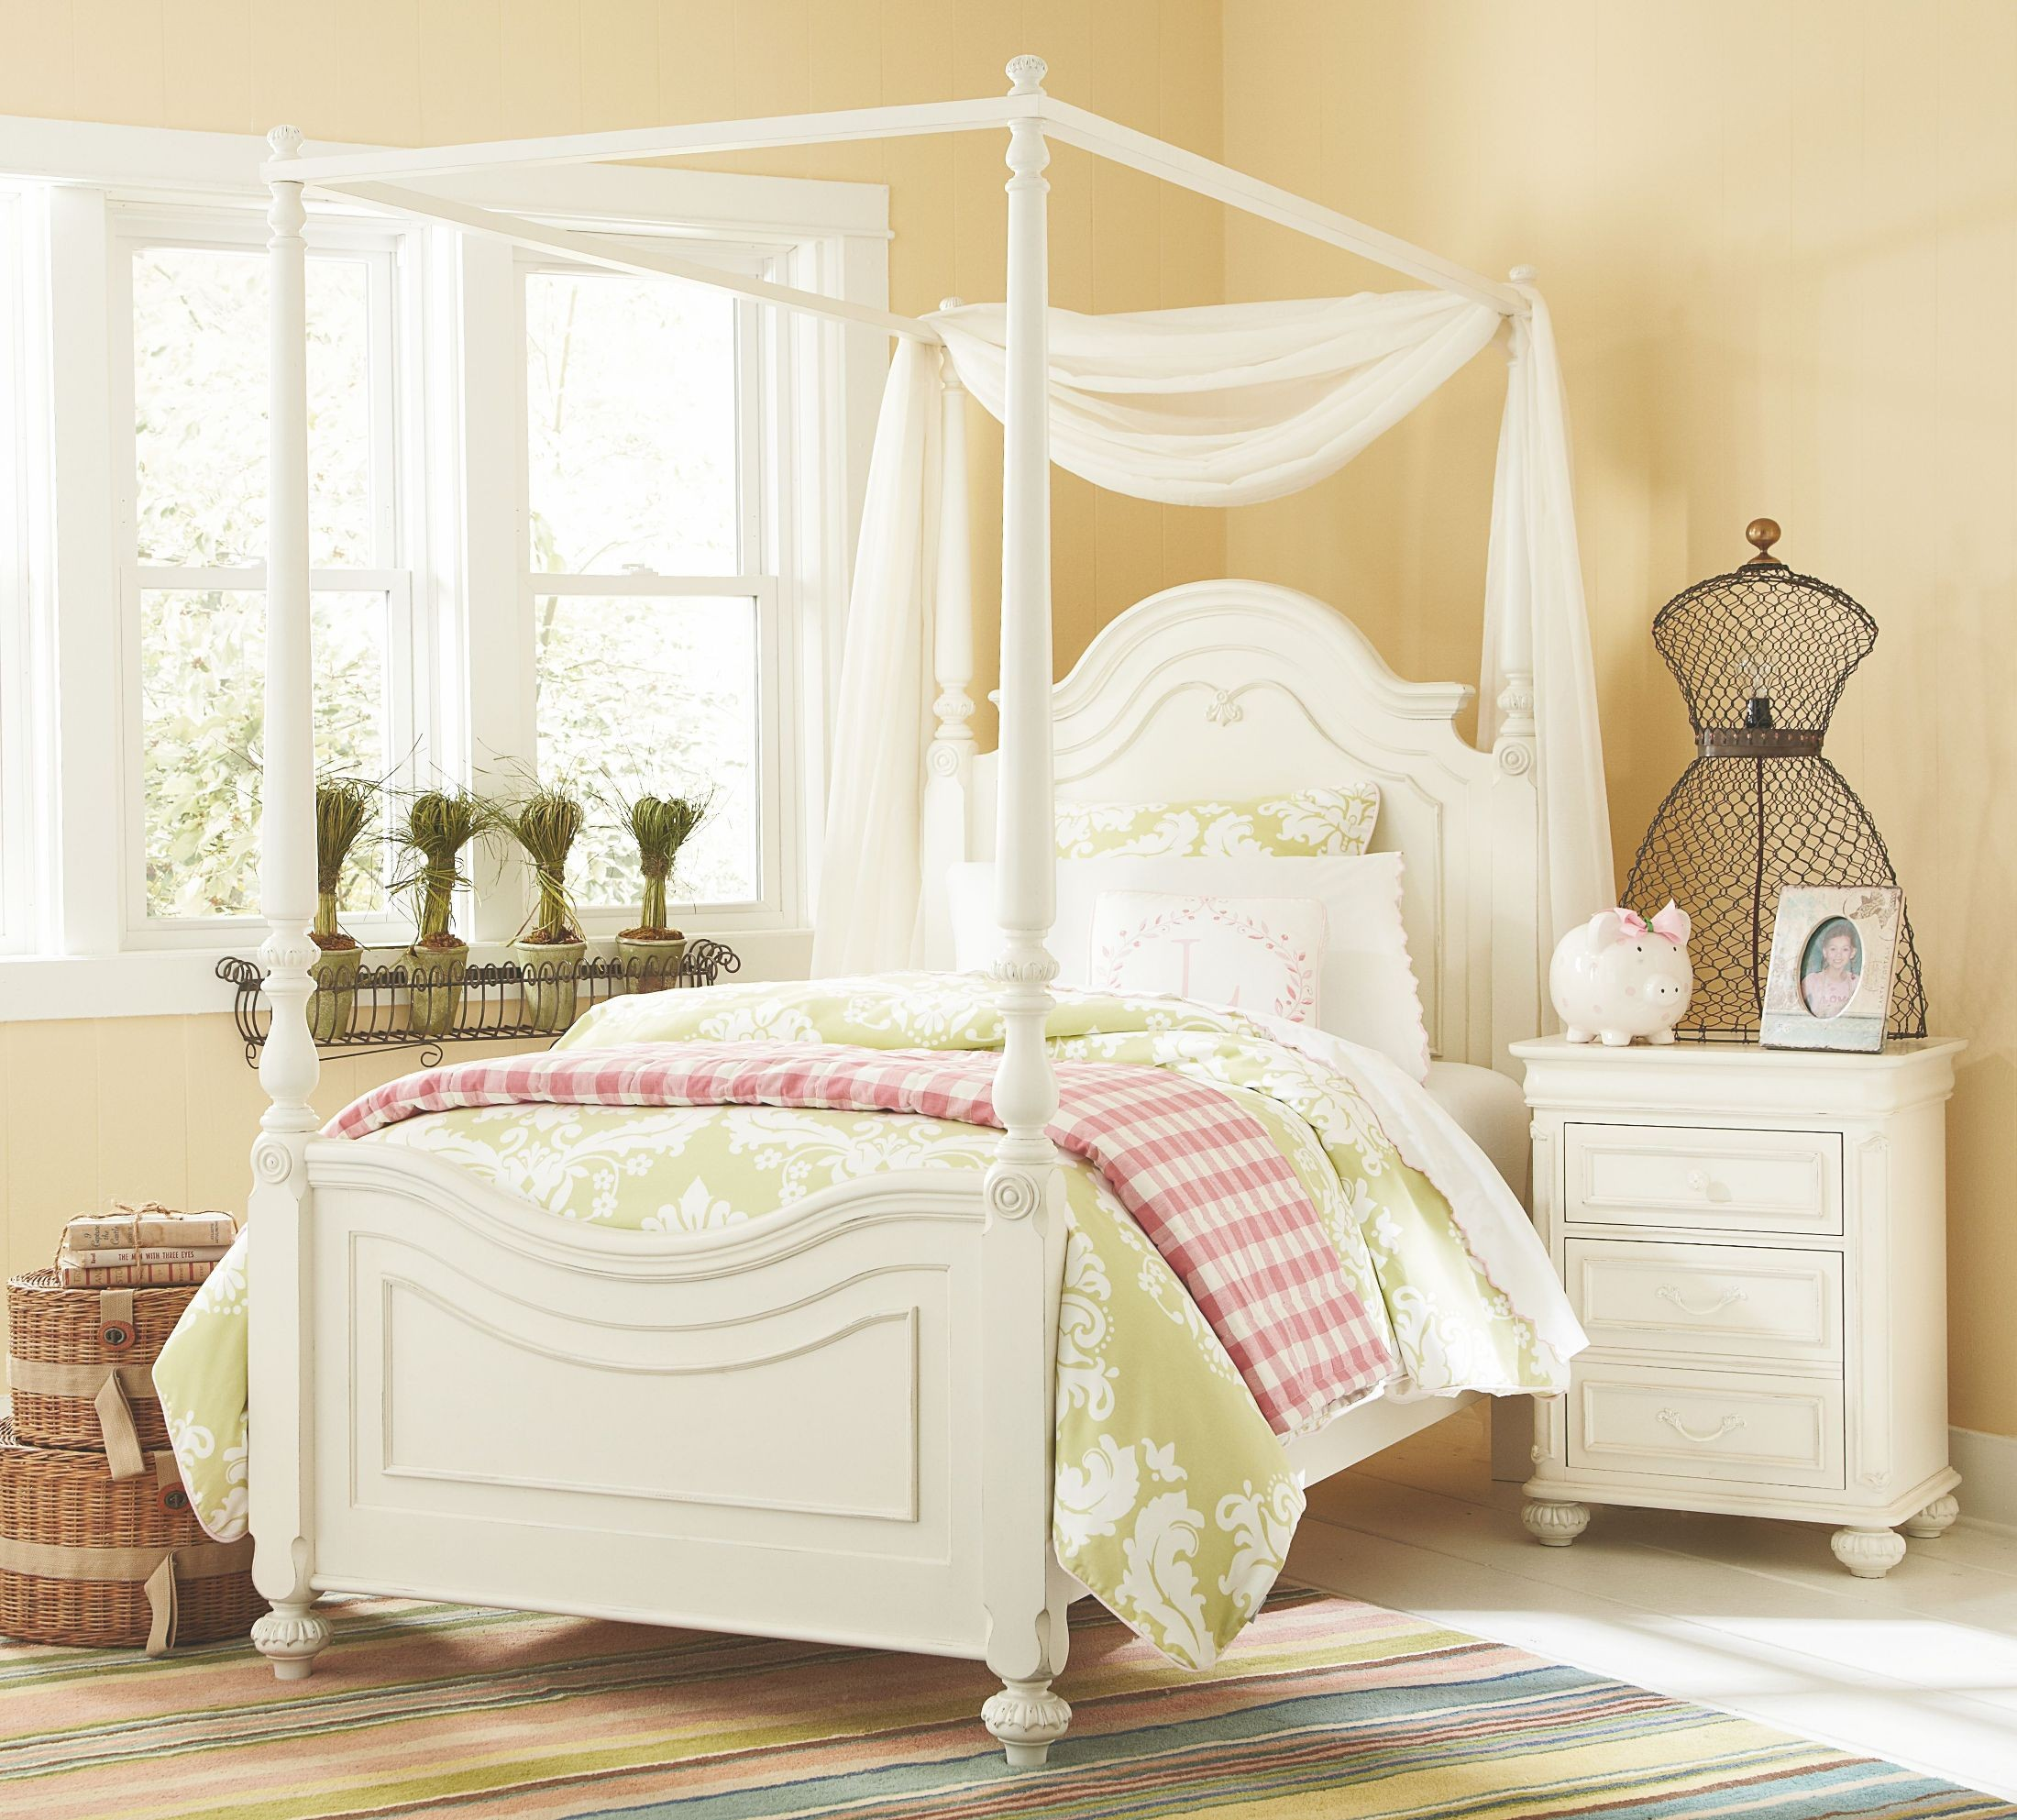 Charlotte youth low poster canopy kit bedroom set from for Poster bedroom sets